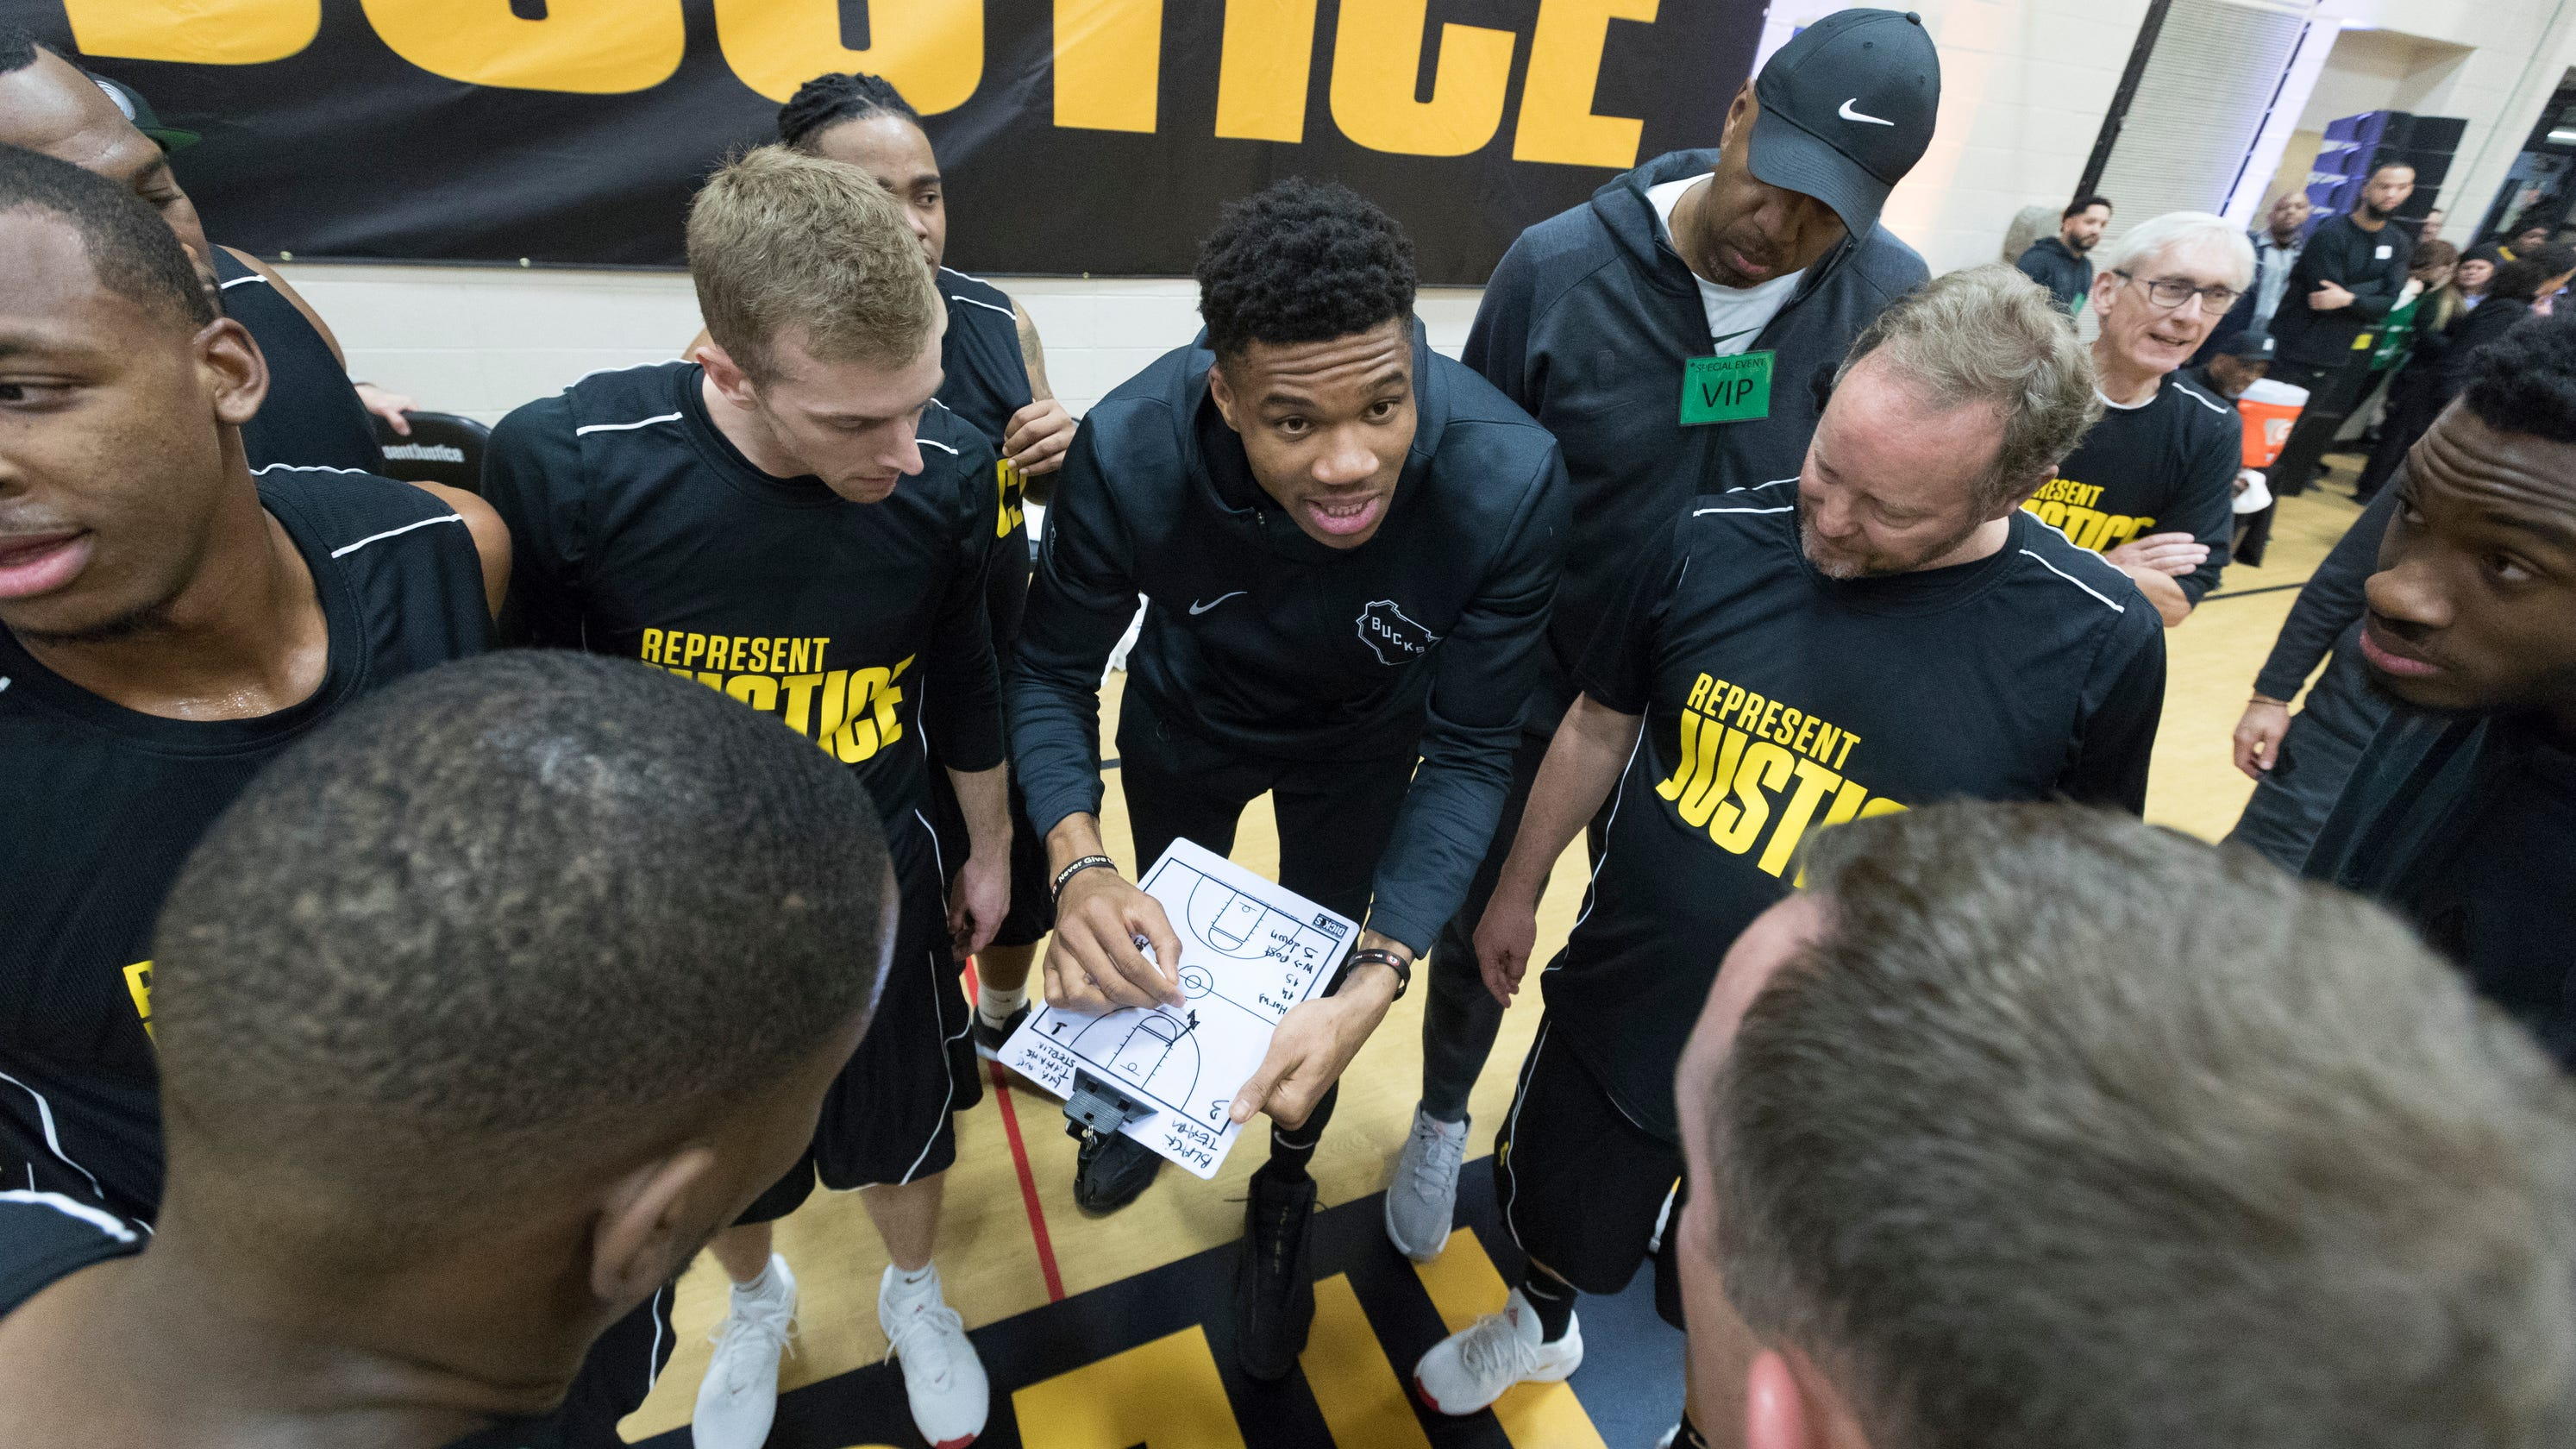 Bucks visit Racine Correctional Institution to 'Play for Justice'